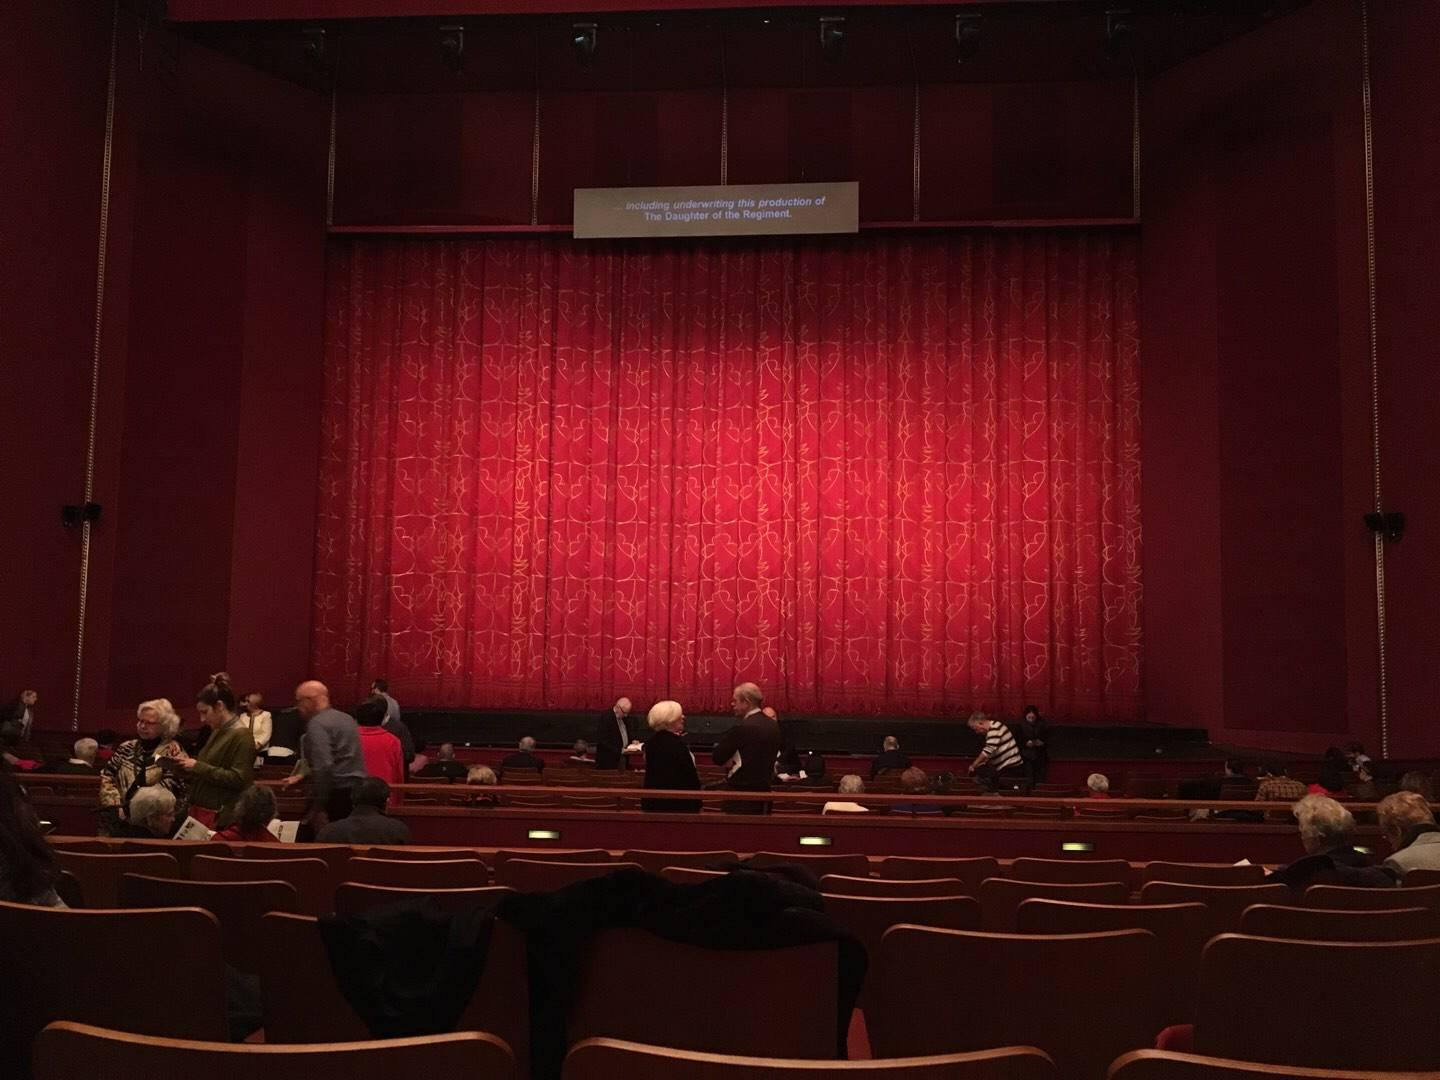 The Kennedy Center Opera House Section Orchestra C Row Y Seat 112